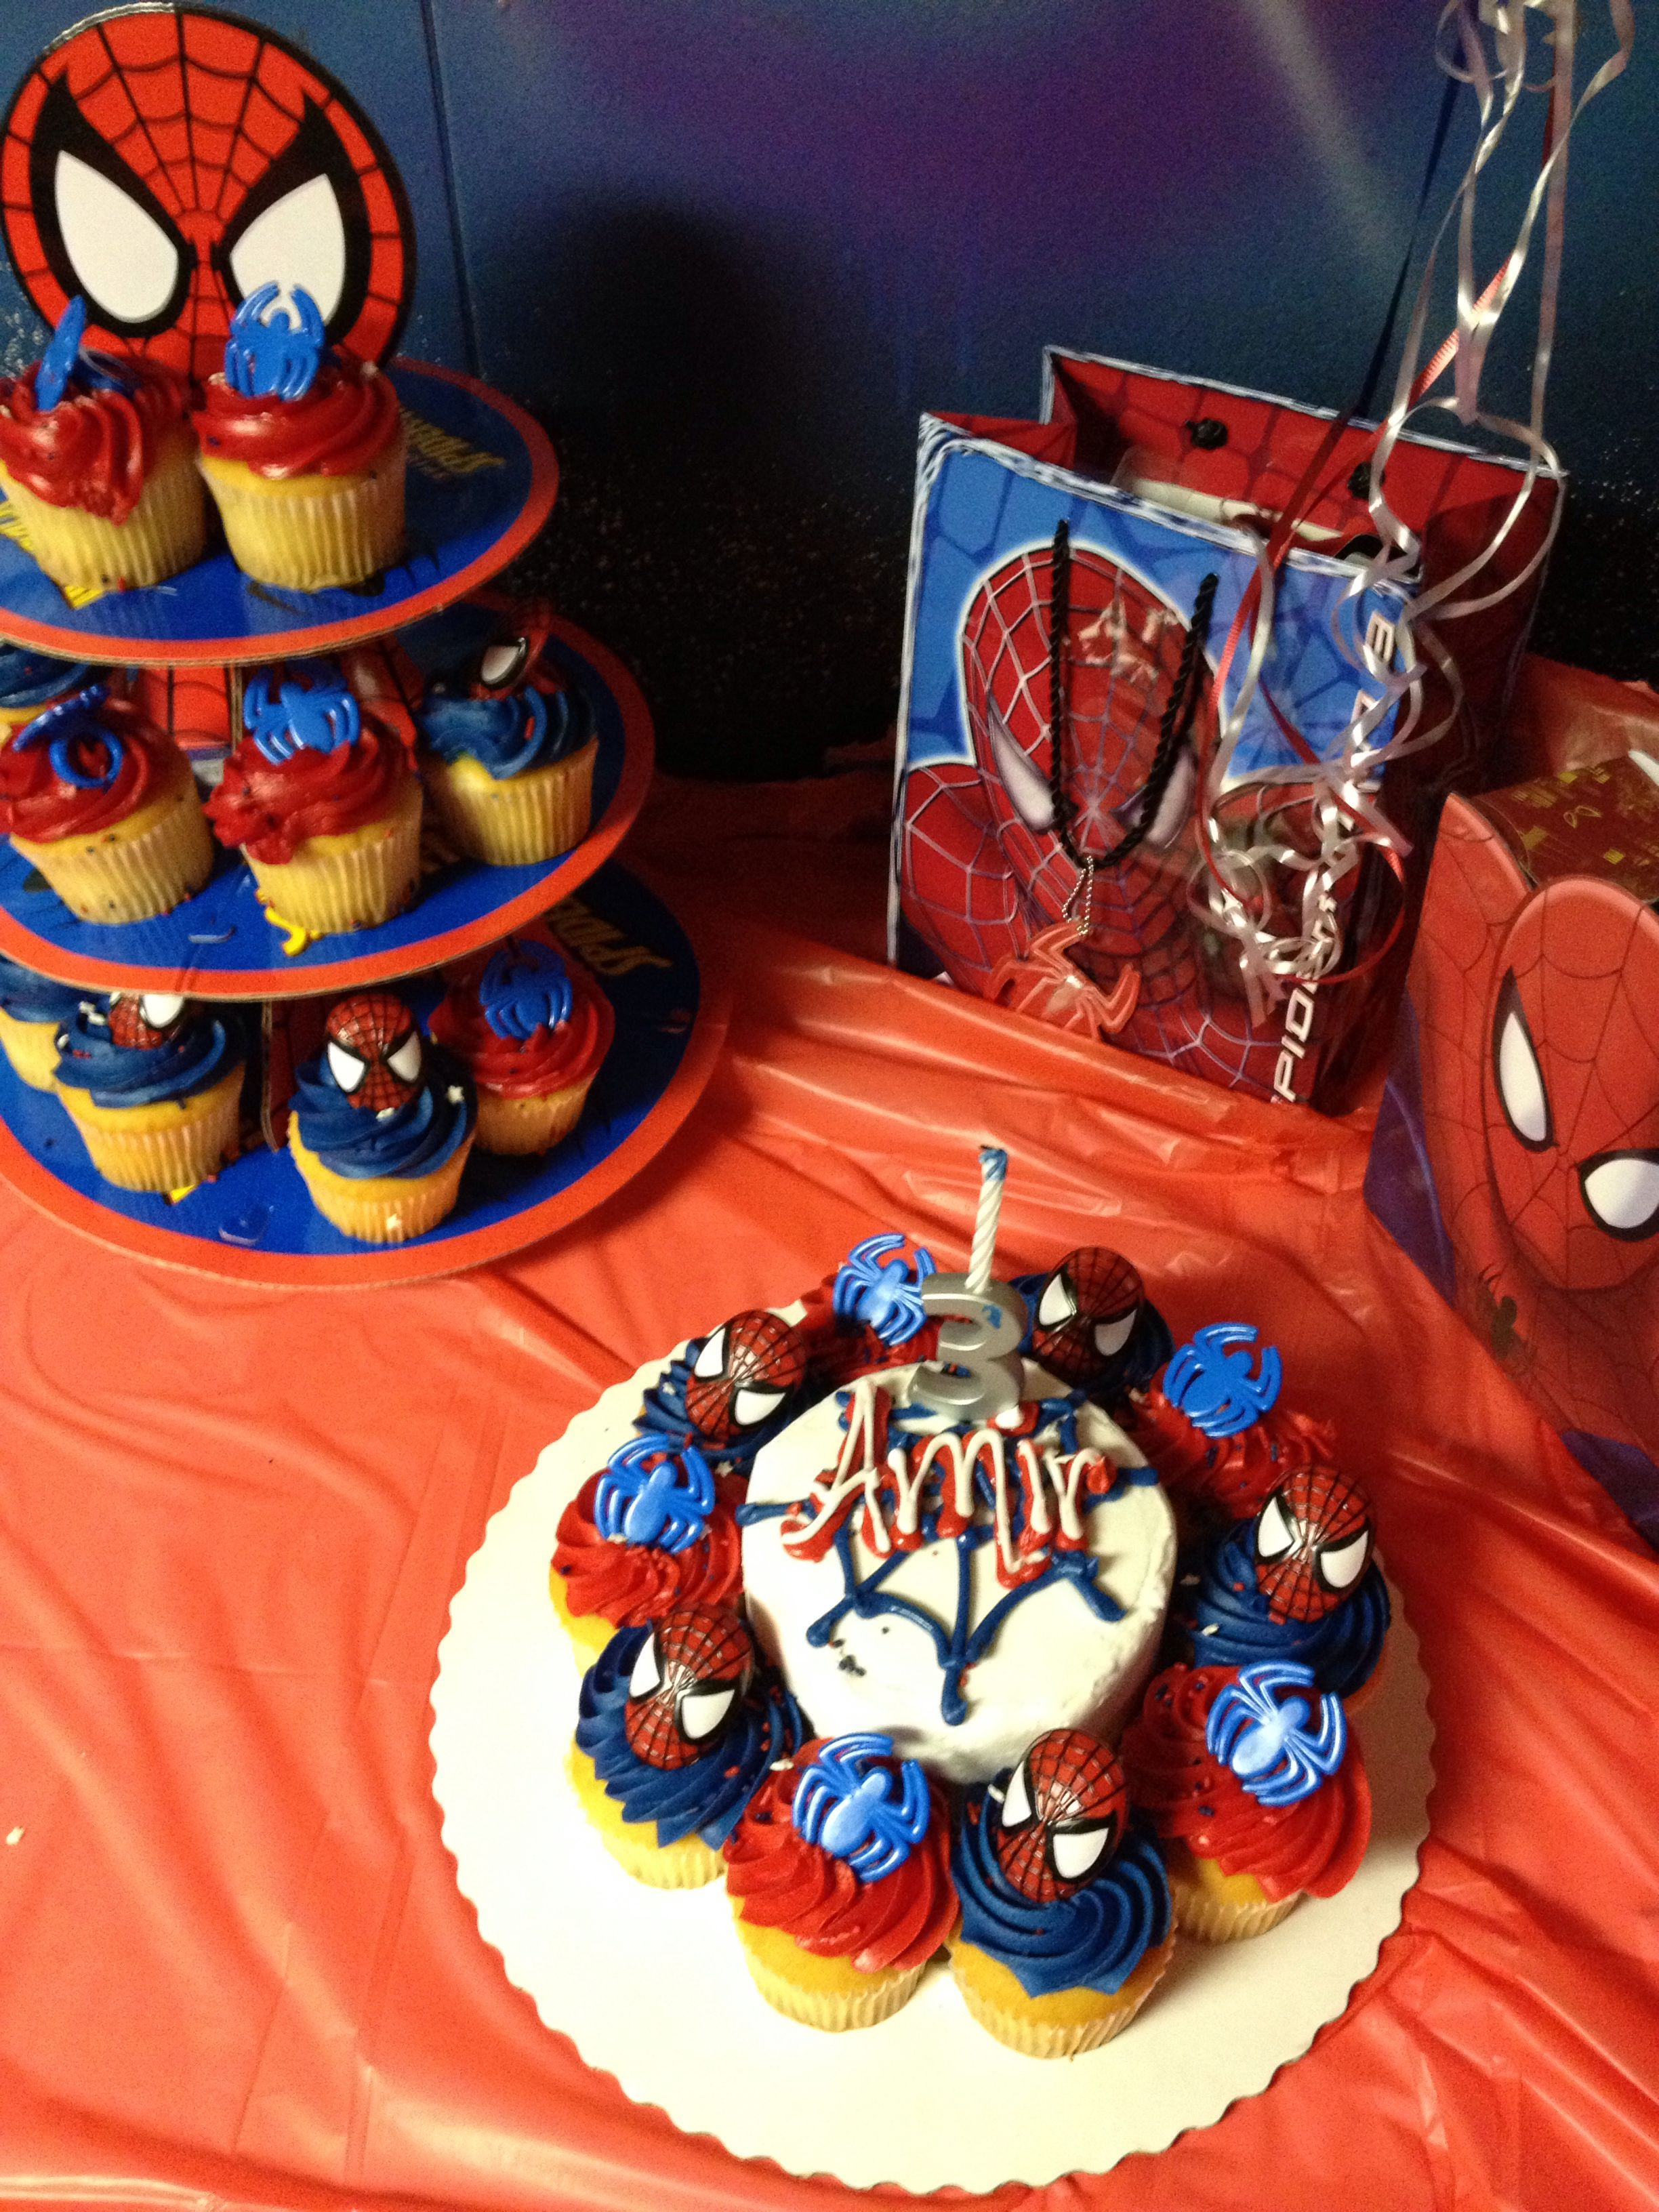 Spiderman Cake And Cupcake From Sams Cluby 26 Total30